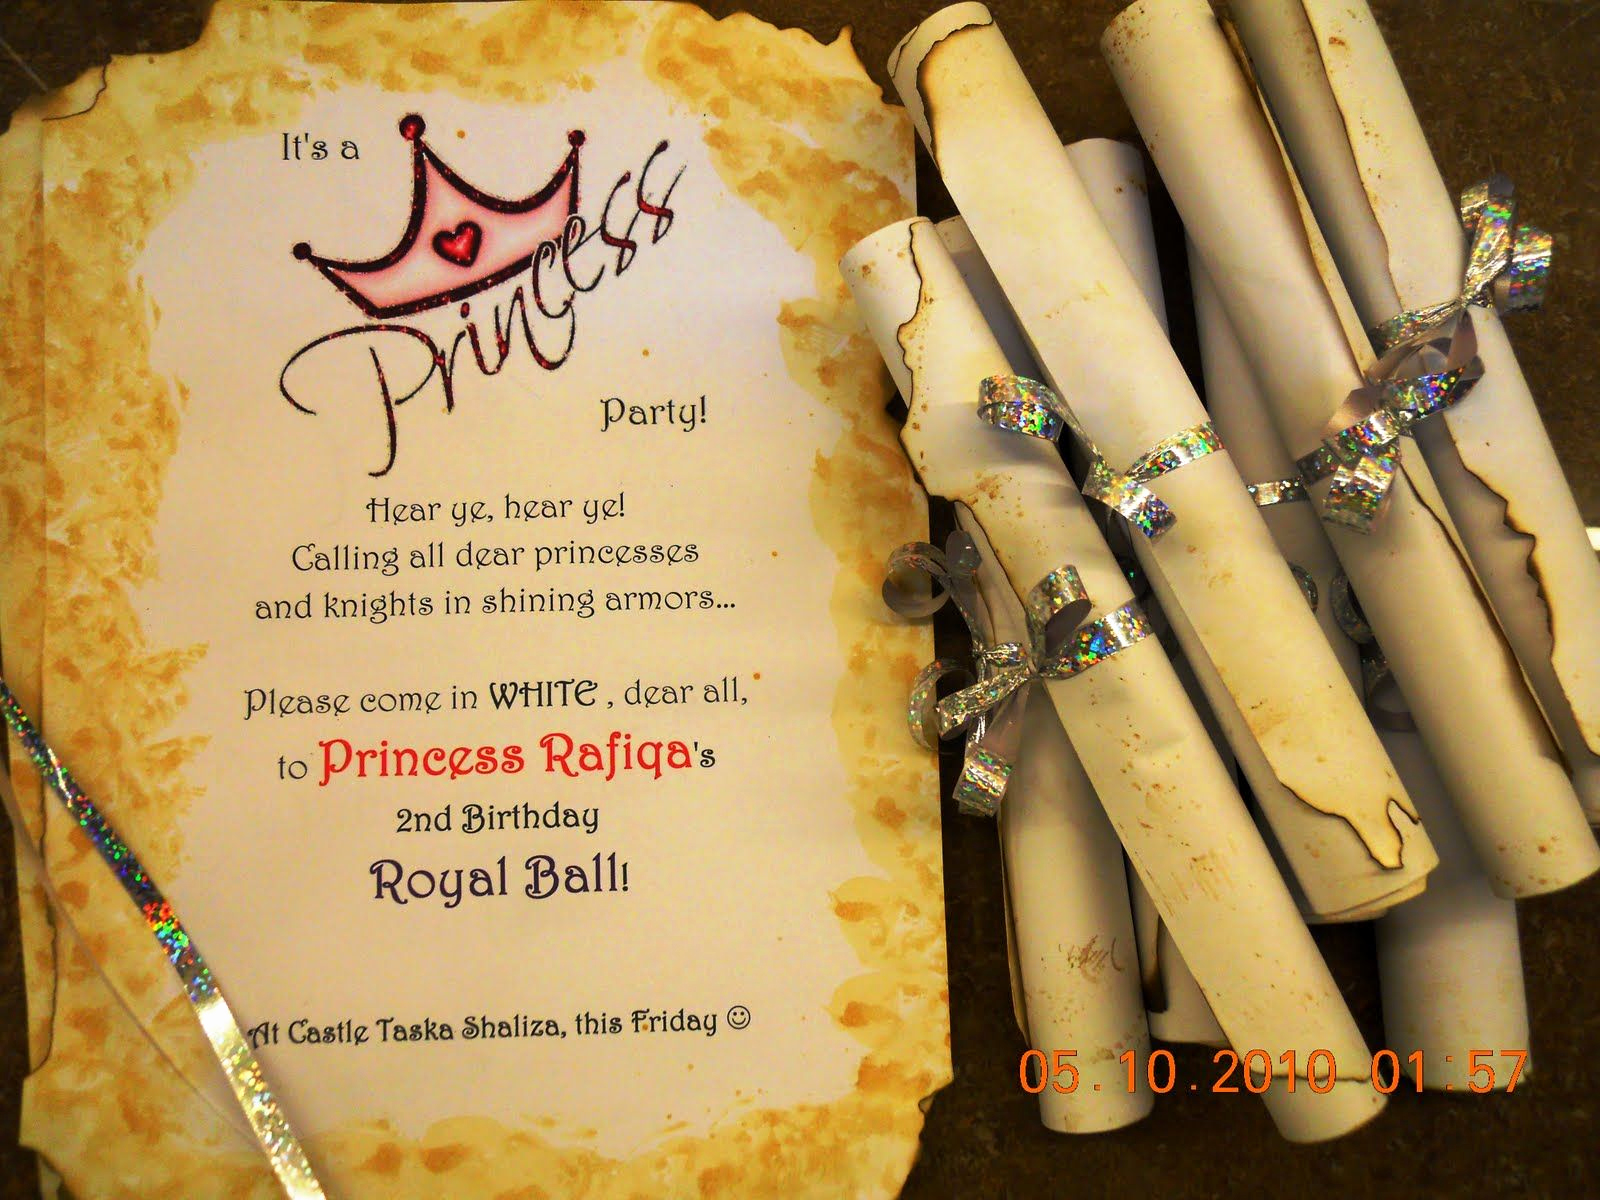 Royal Ball Invitation Wording New Royal Ball Invites Don T Love the Wording or the Font